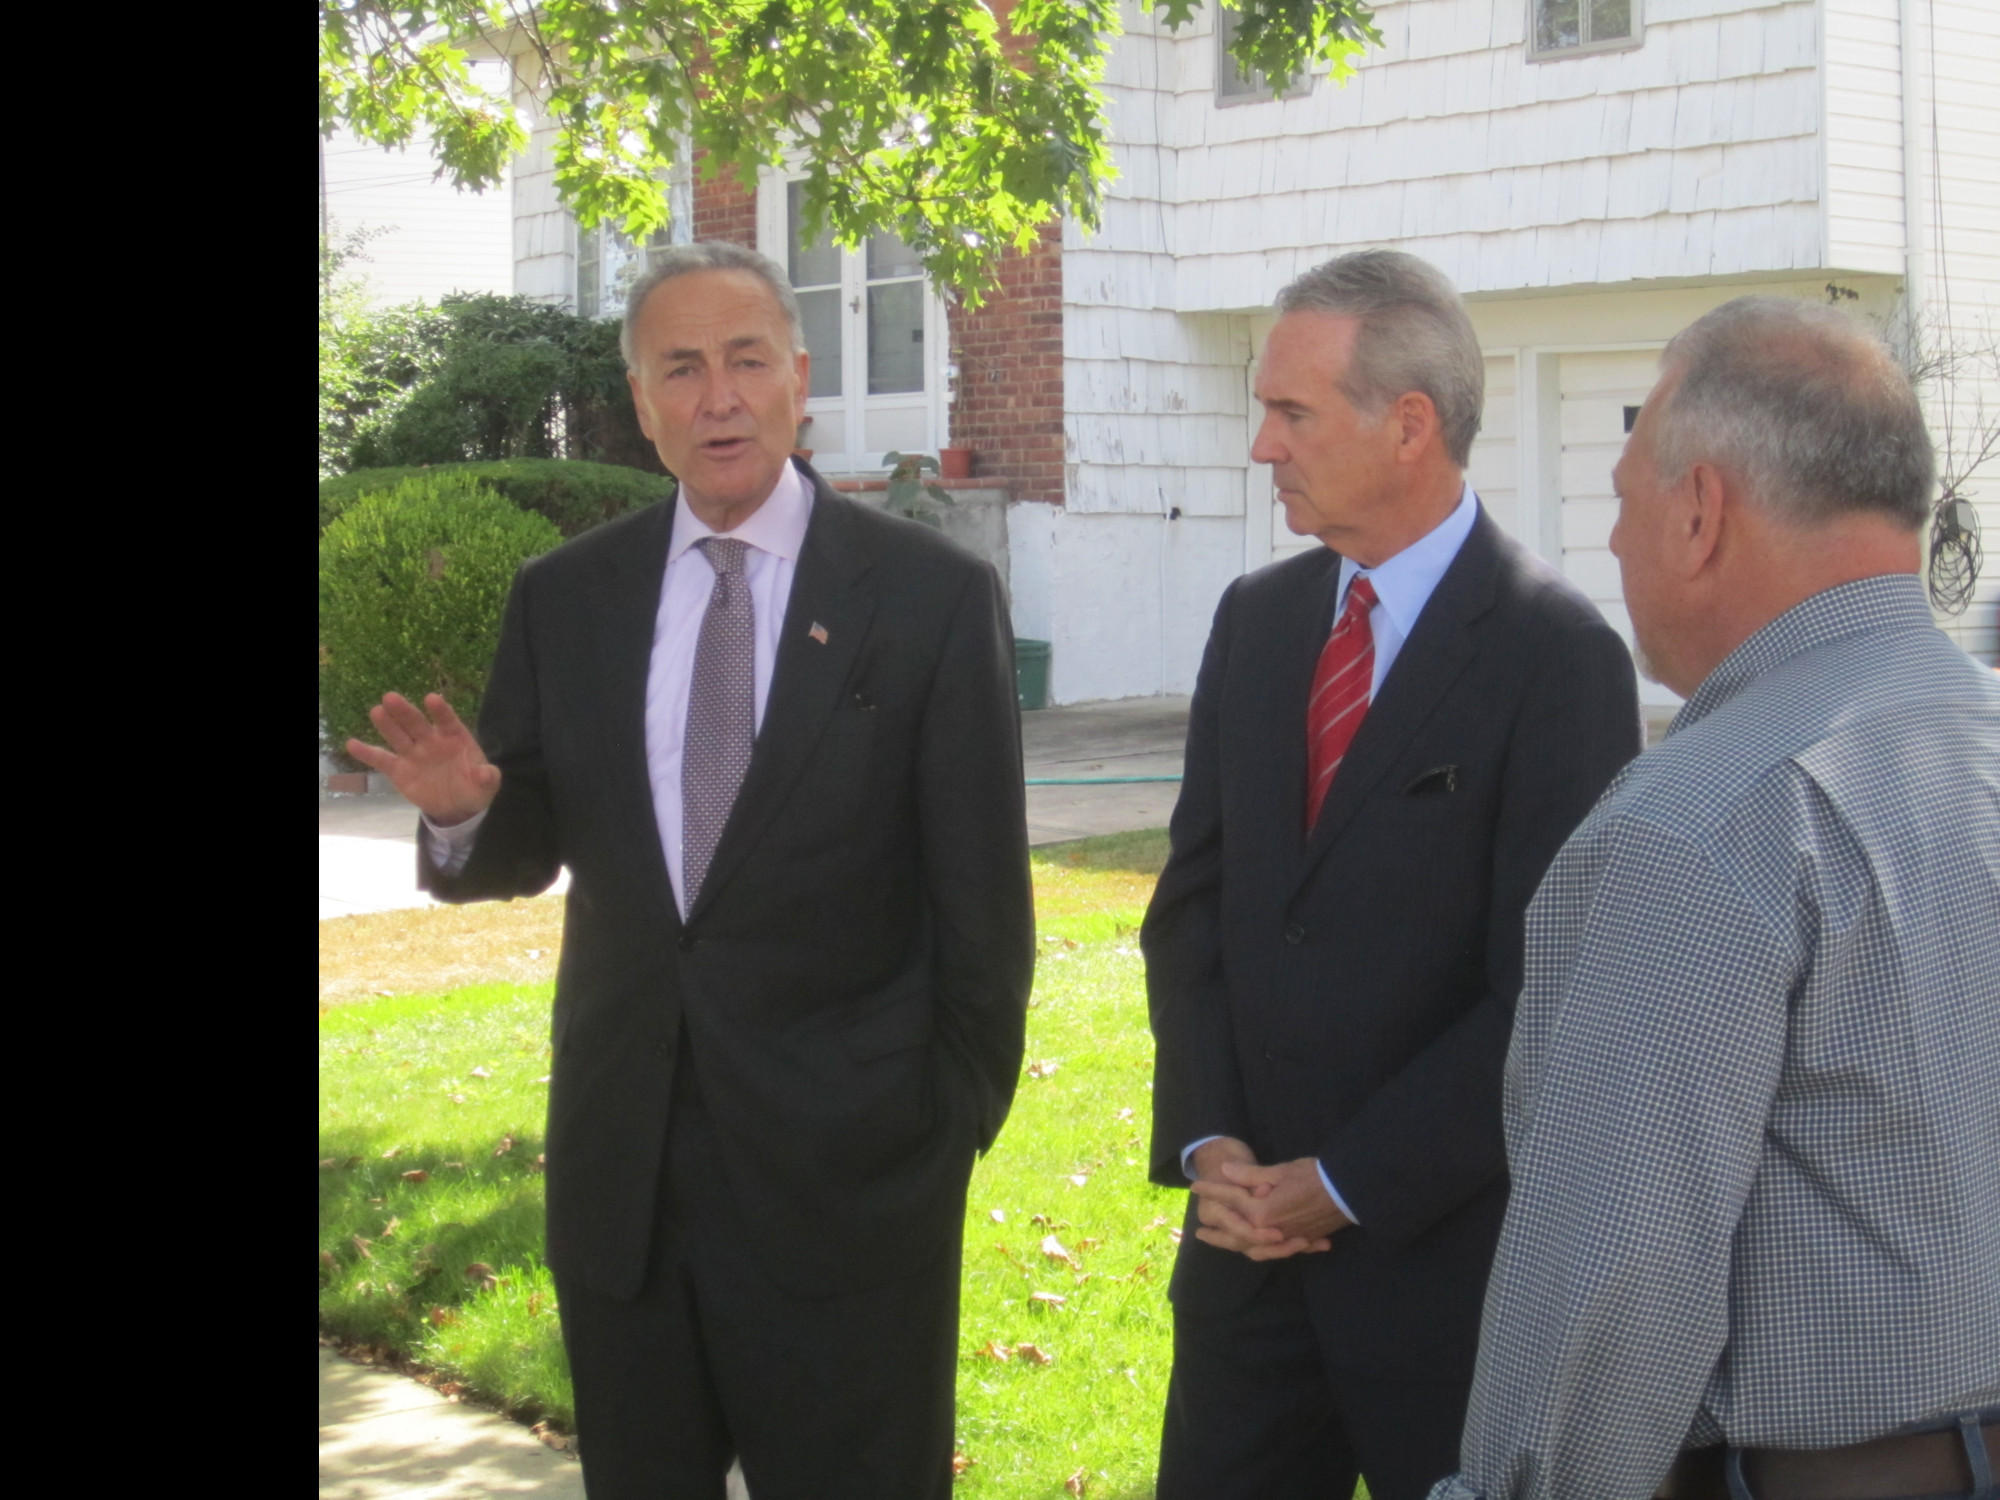 John Cameron Jr., chairman of the Long Island Regional Planning Council, center, joined Schumer at the news conference, and spoke briefly in support of the senator's proposal.